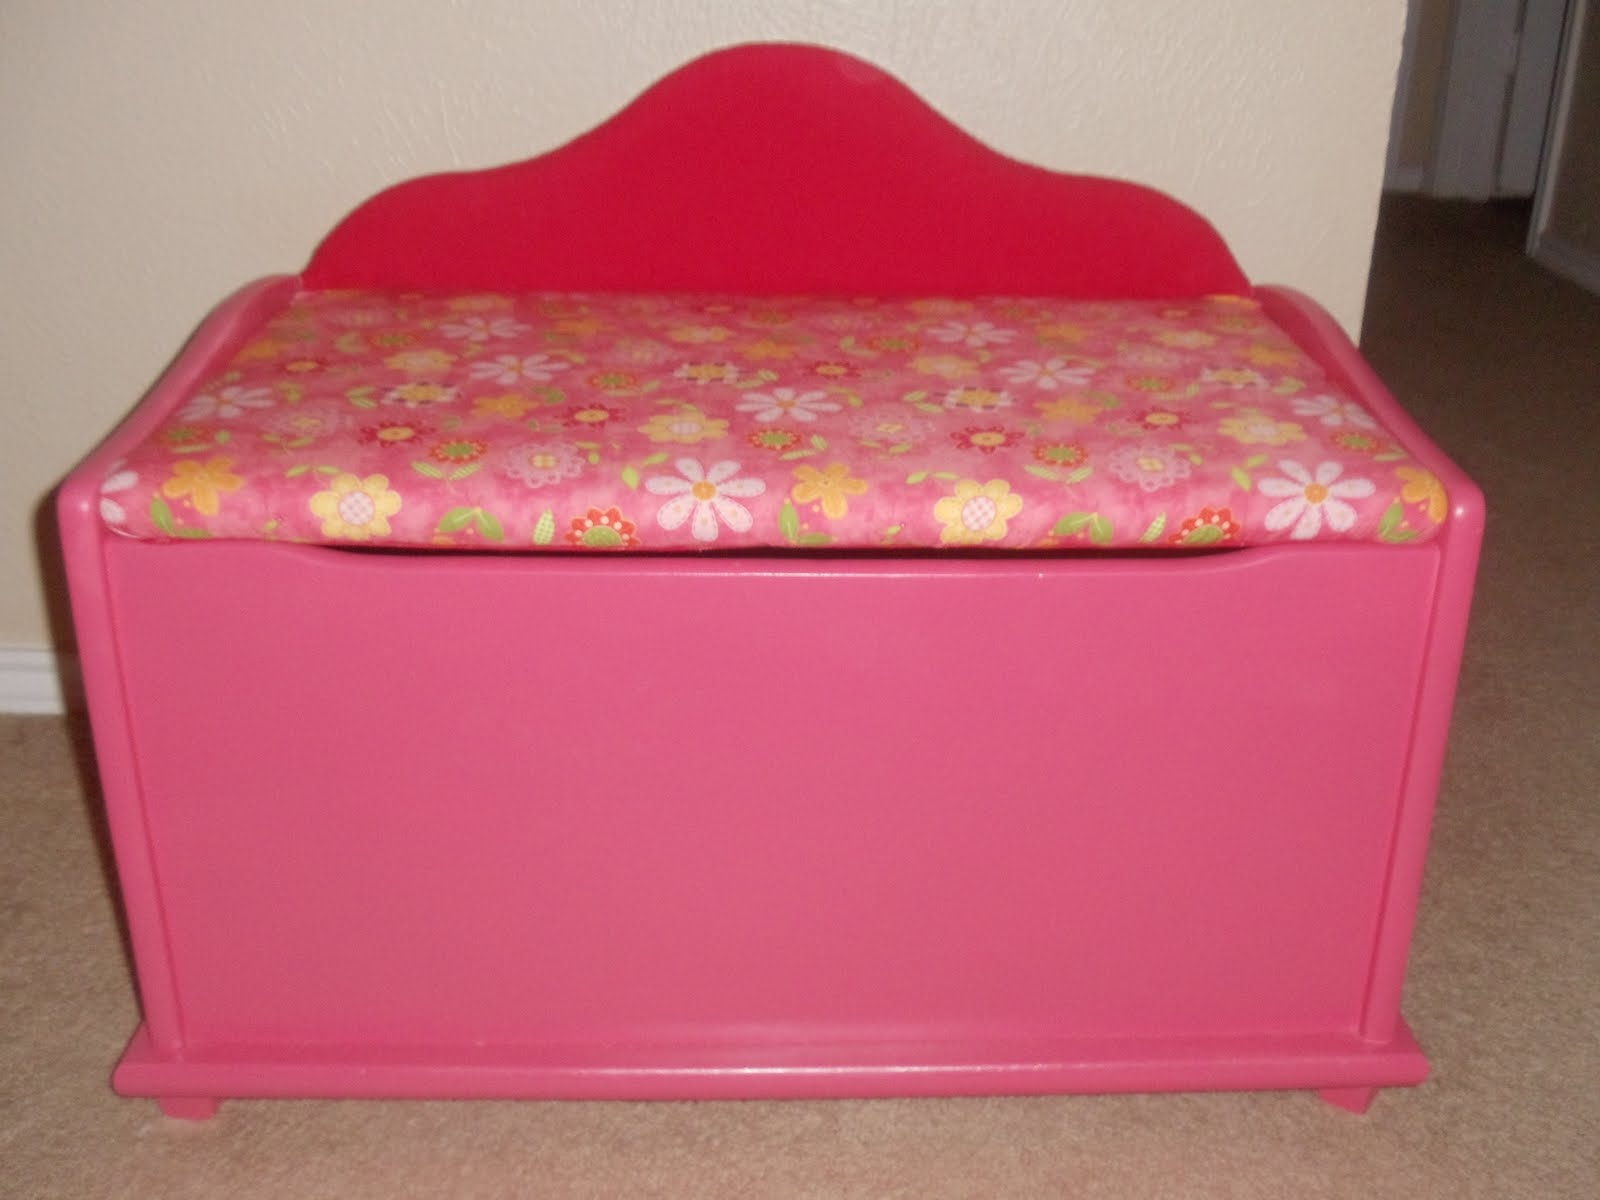 Christmas Toy Box : Our silly family refinishing a toy chest